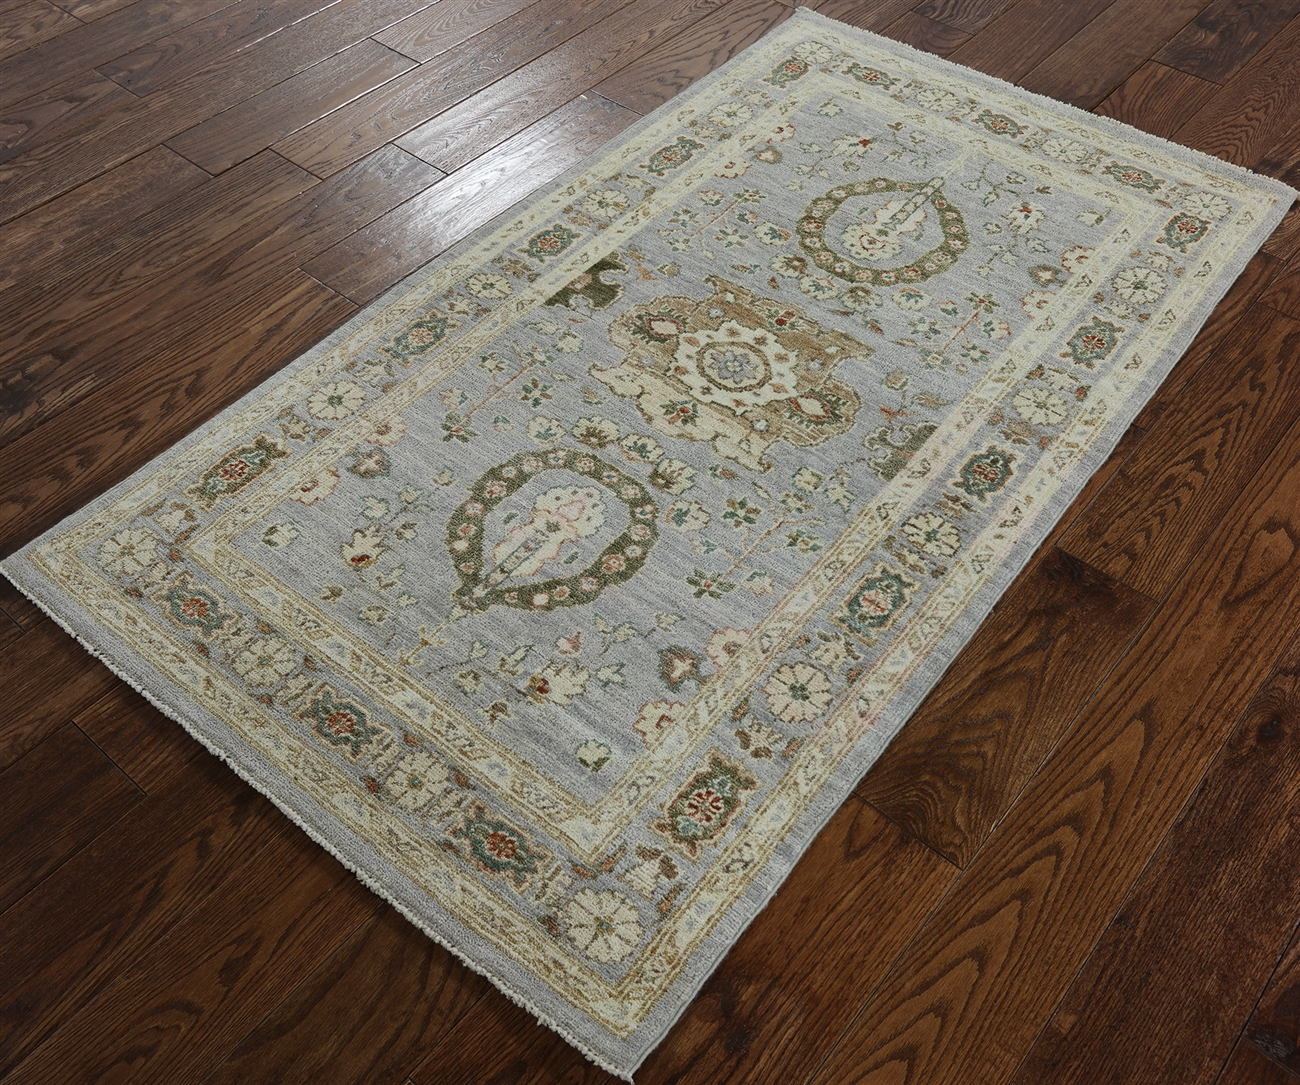 Oriental Persian Hand Knotted Area Rug 3 X 5